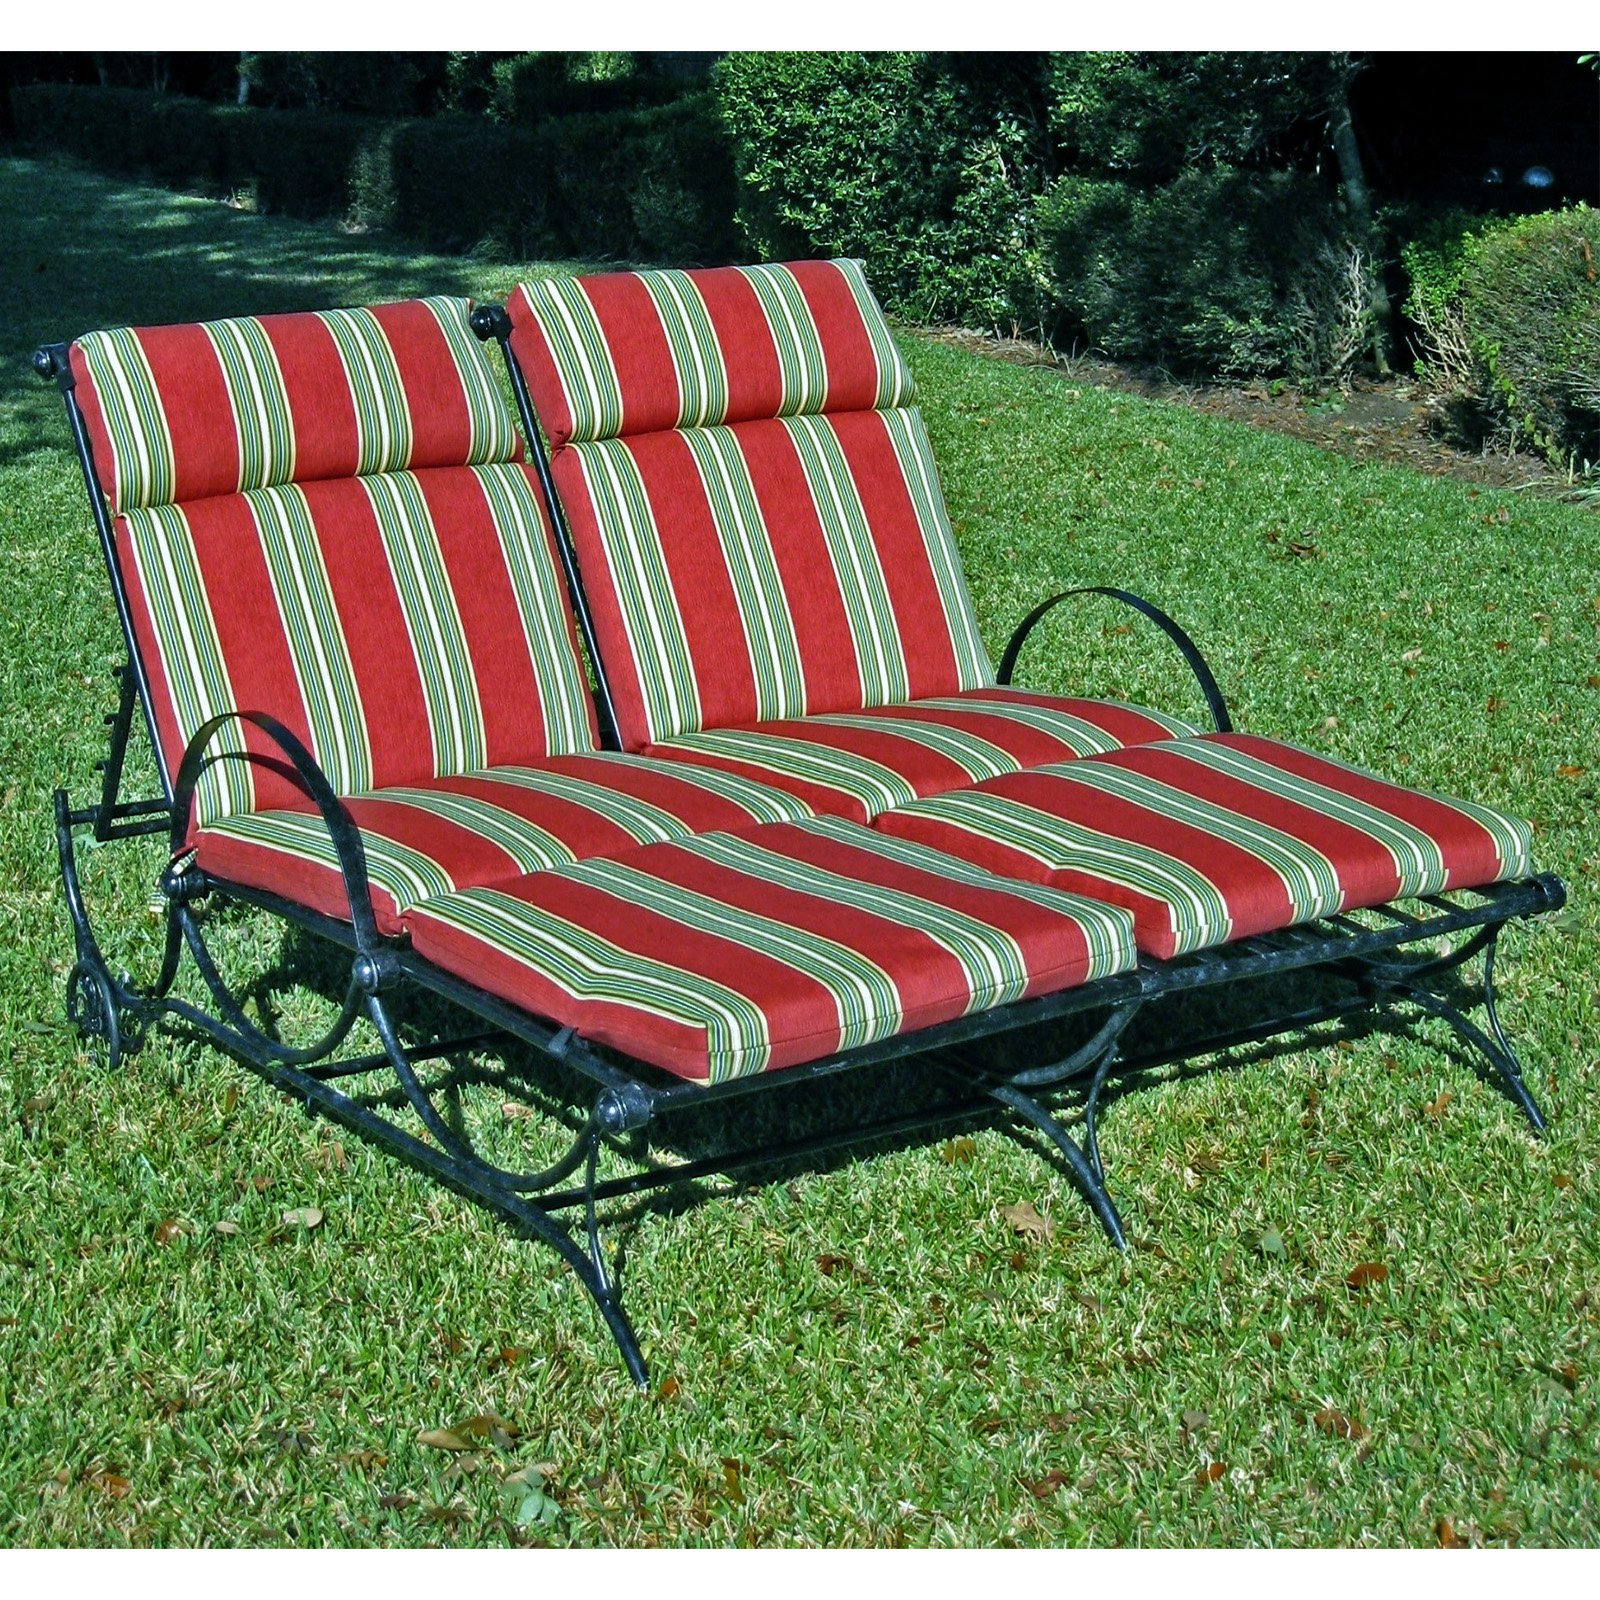 Outdoor double chaise lounge clearance replacement cushion for Chaise cushions clearance